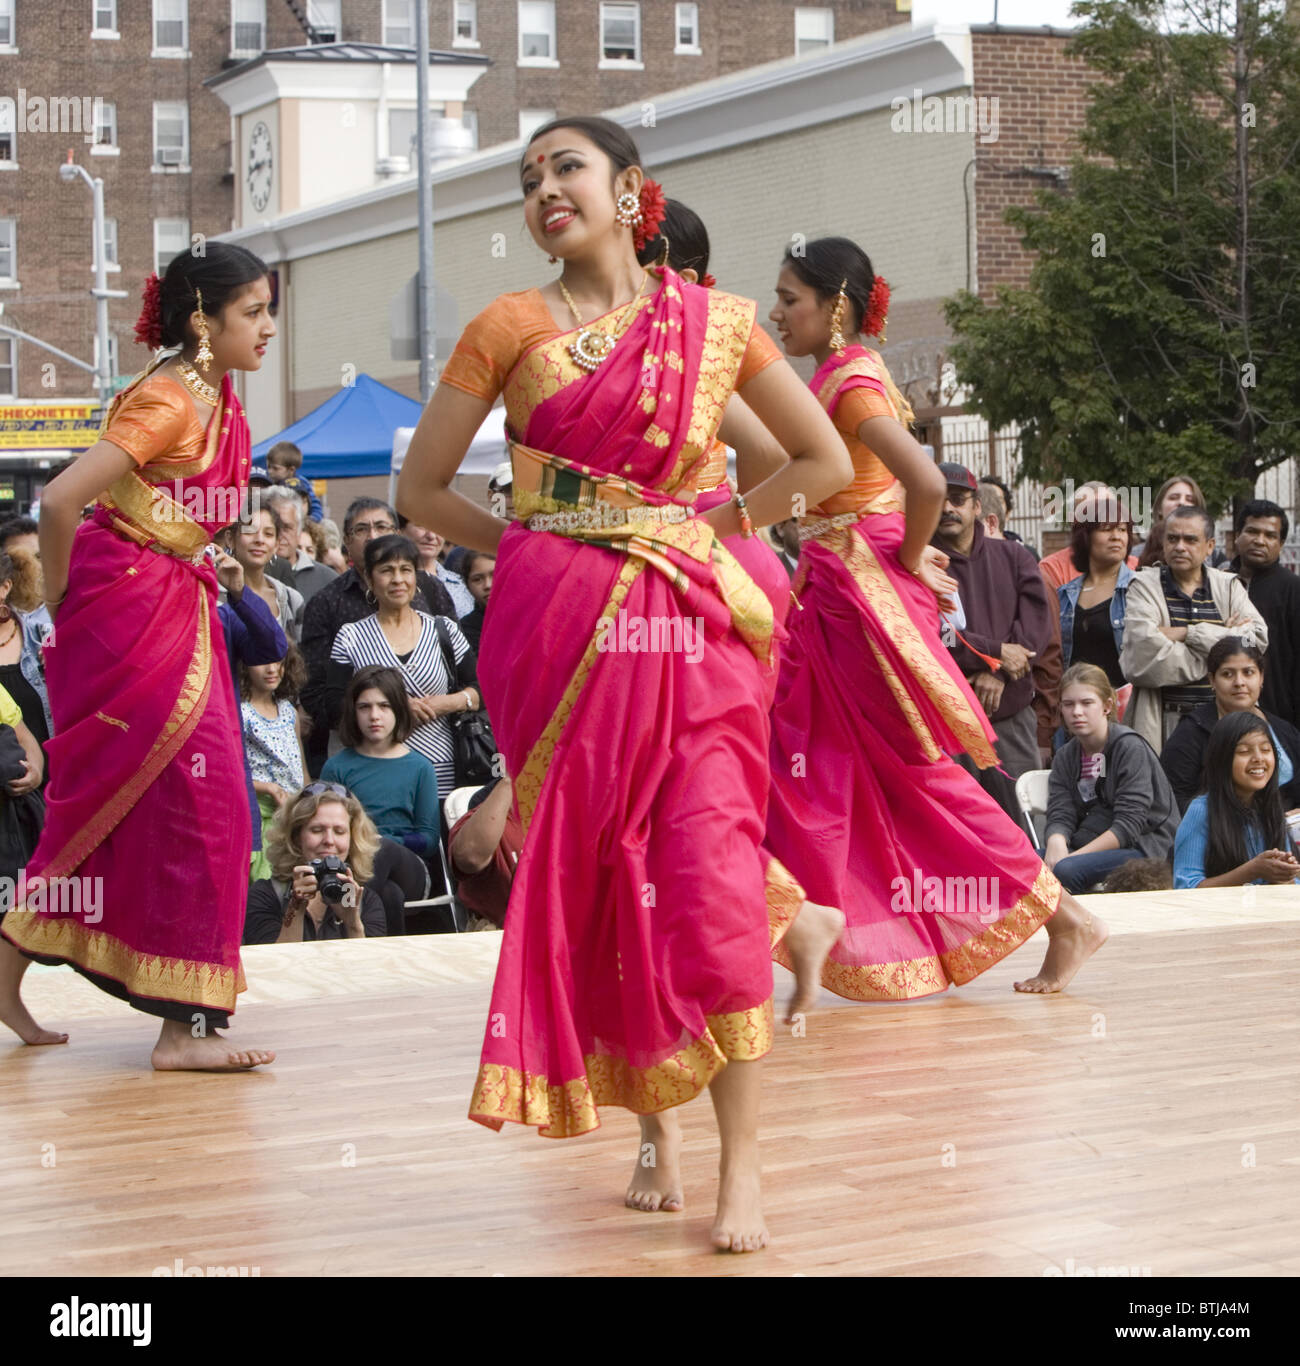 Bangladeshi American performance group performs at a festival for world cultures in Brooklyn; New York. - Stock Image